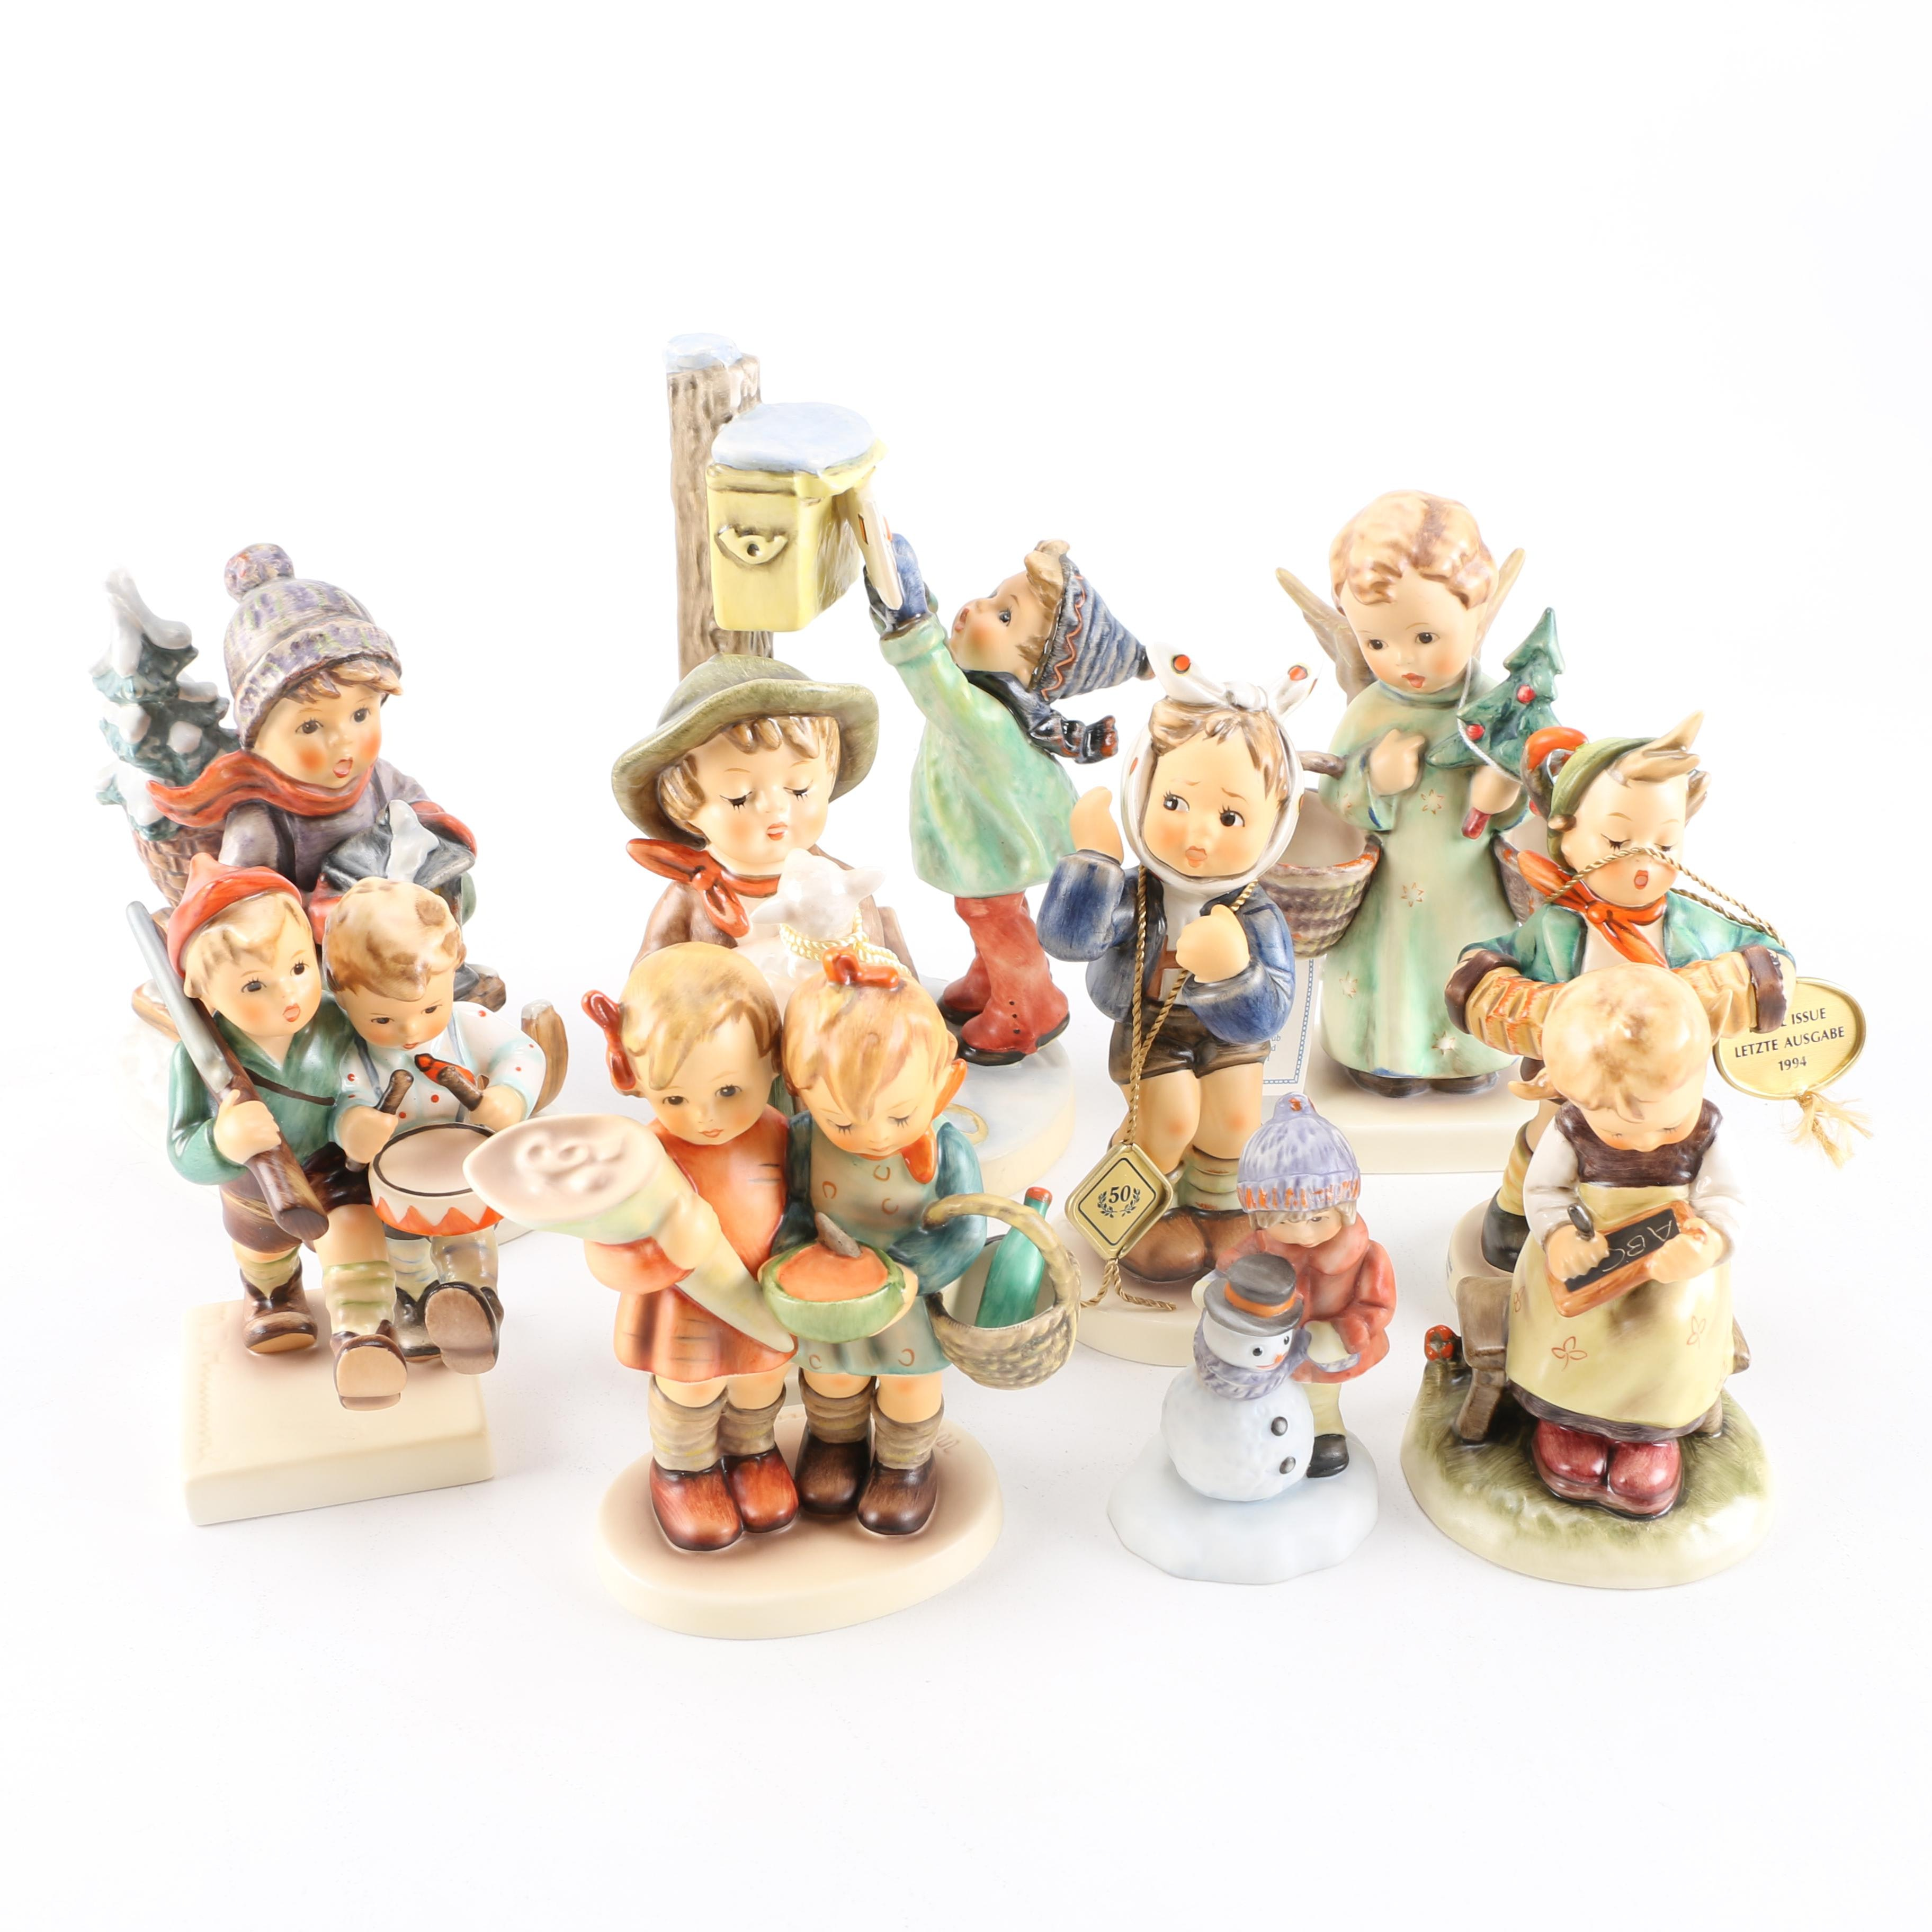 Goebel Hummel Figurines Including Christmas Themes and Final Issues